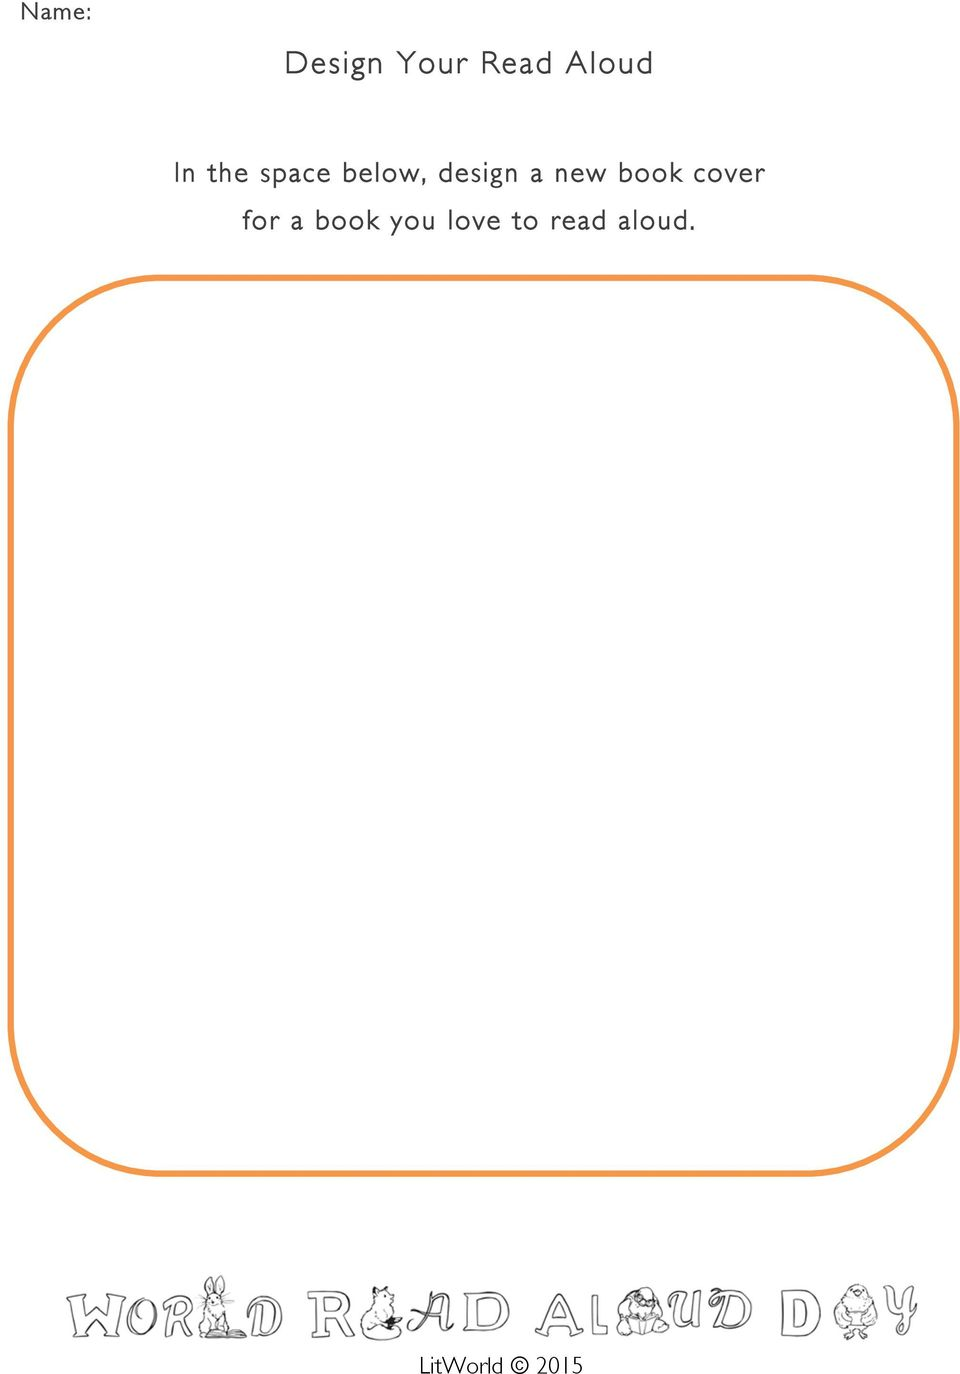 design a new book cover